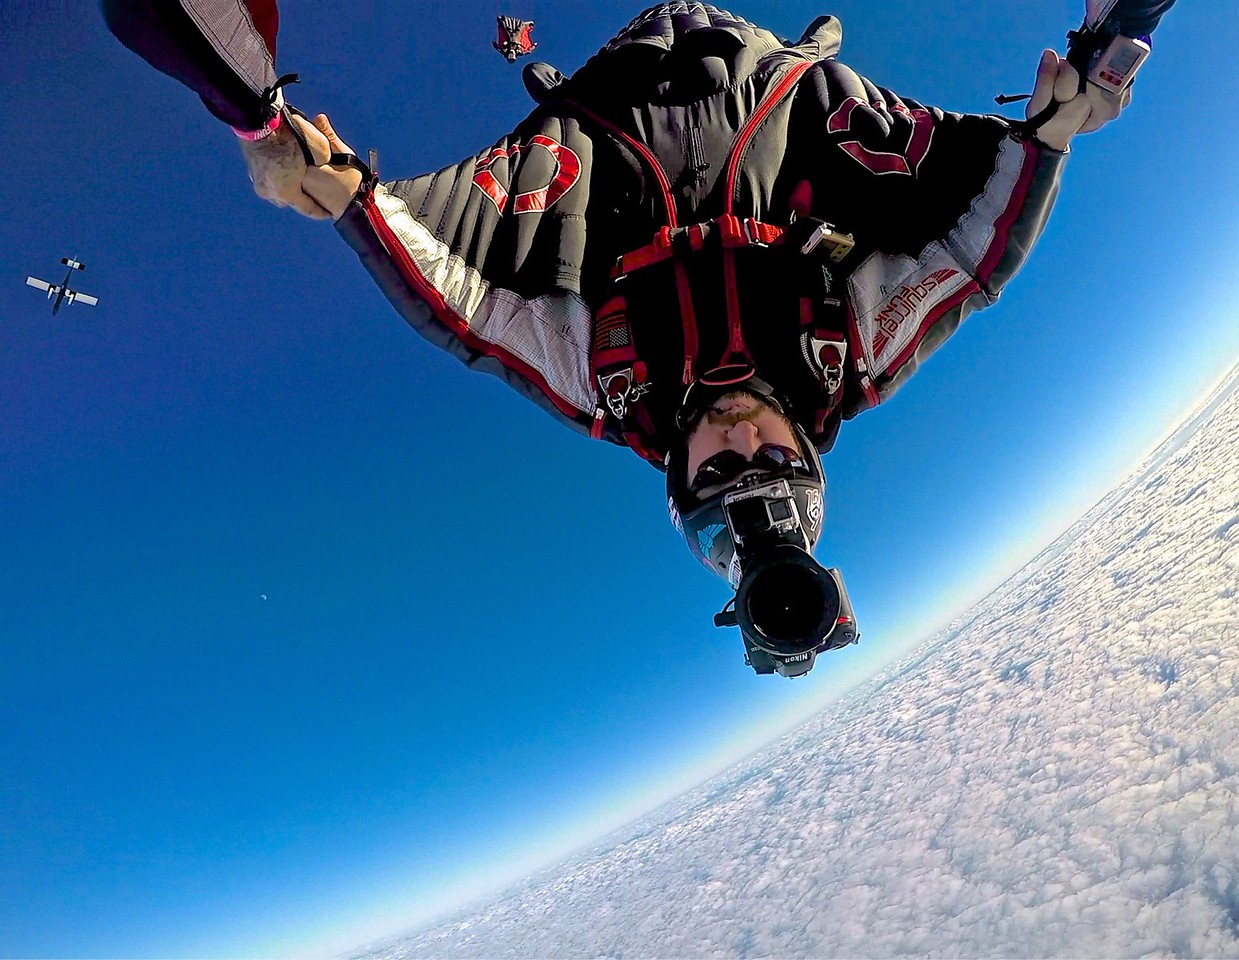 Head down wingsuit flight